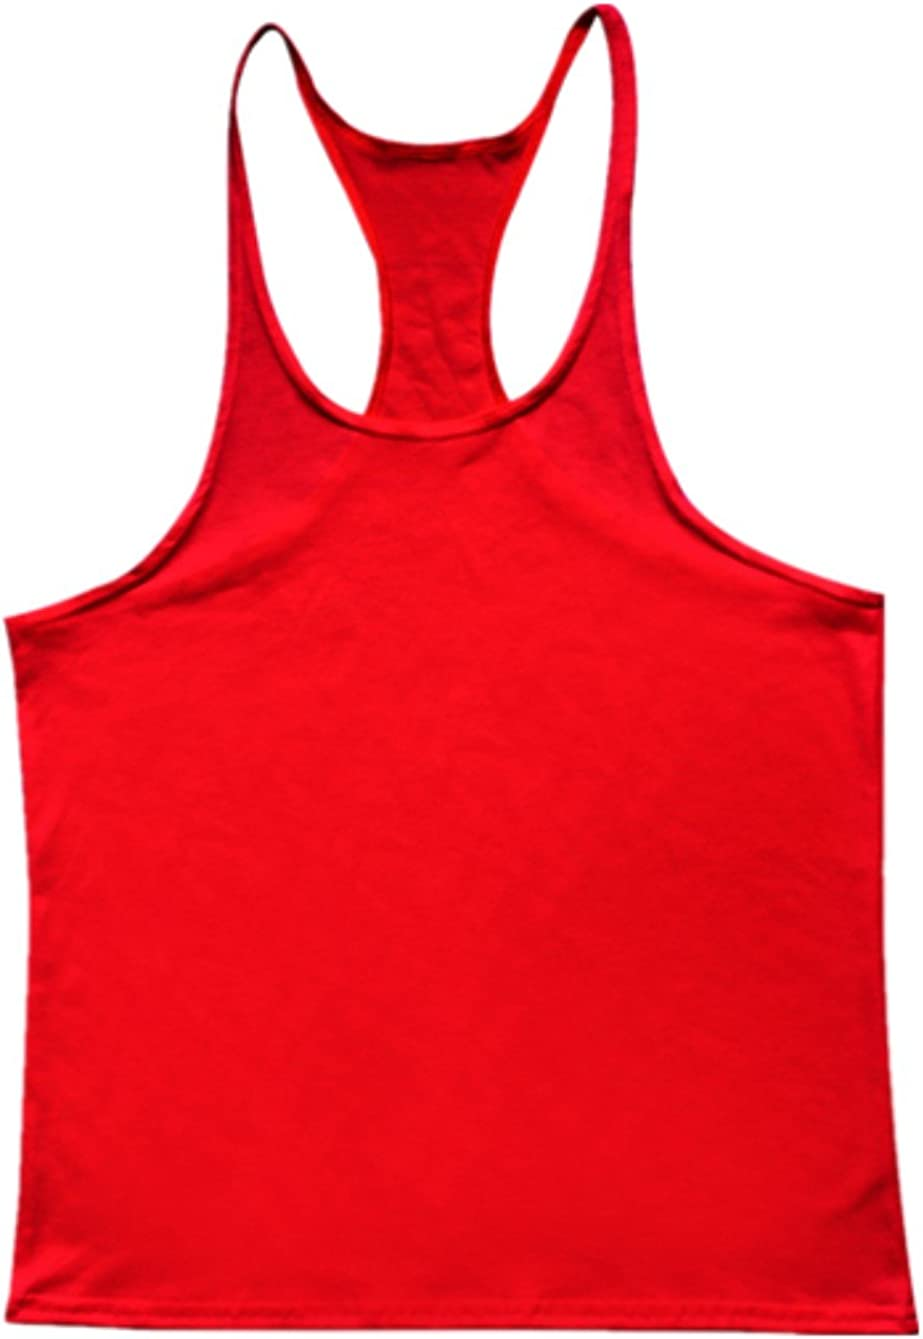 Q/&Y Mens Y Back Muscle Fitness Gym Stringer Tank Tops Workout Sleeveless Shirts